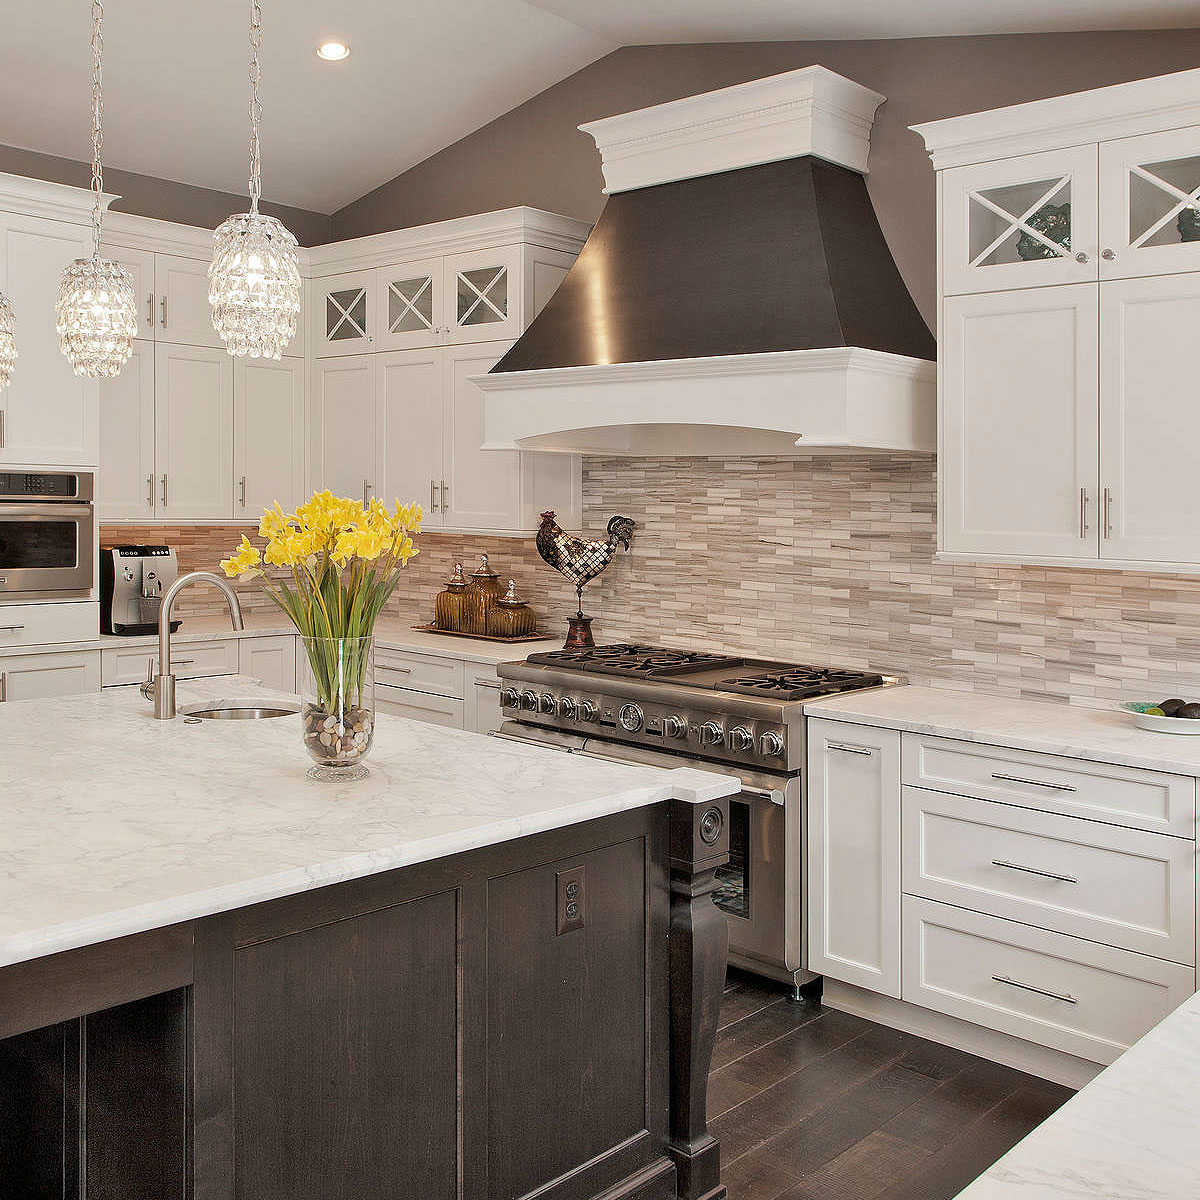 - BACKSPLASH.com (Best Kitchen Backsplash Ideas) - Top Trends!